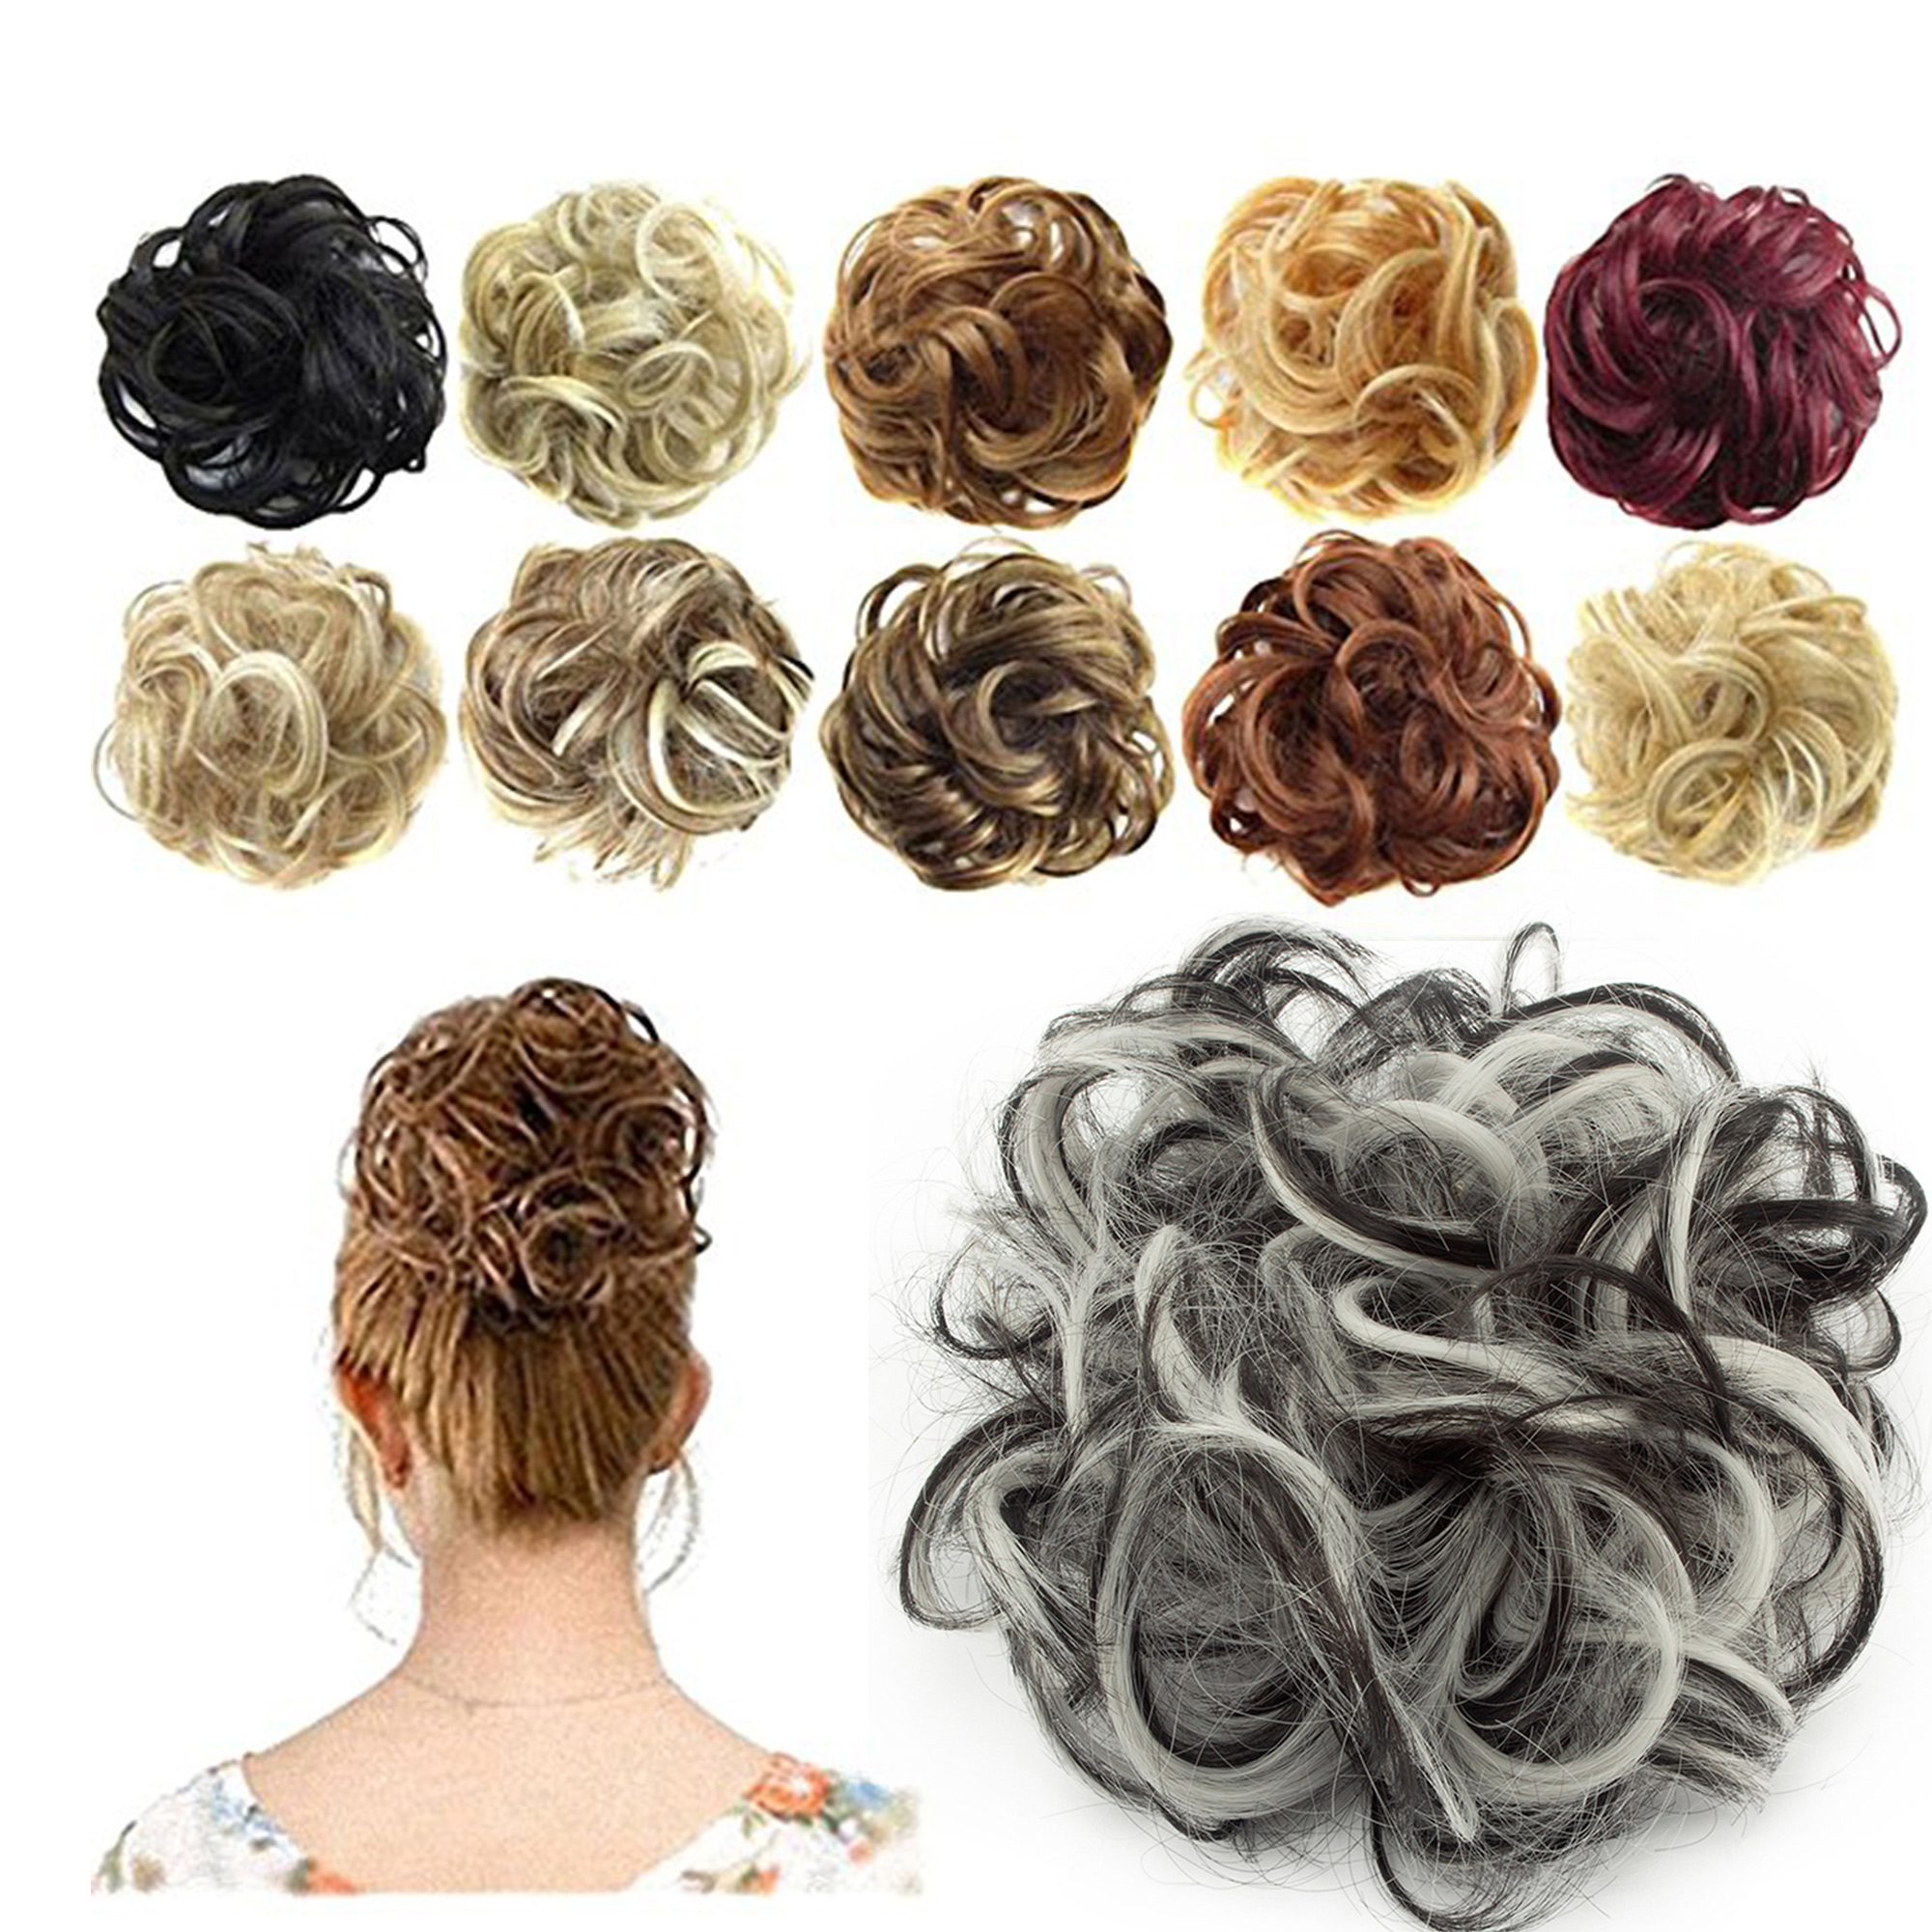 FLORATA Synthetic Hair Bun Extensions Messy Hair Scrunchies Hair Pieces for Women Hair Donut Updo Ponytail